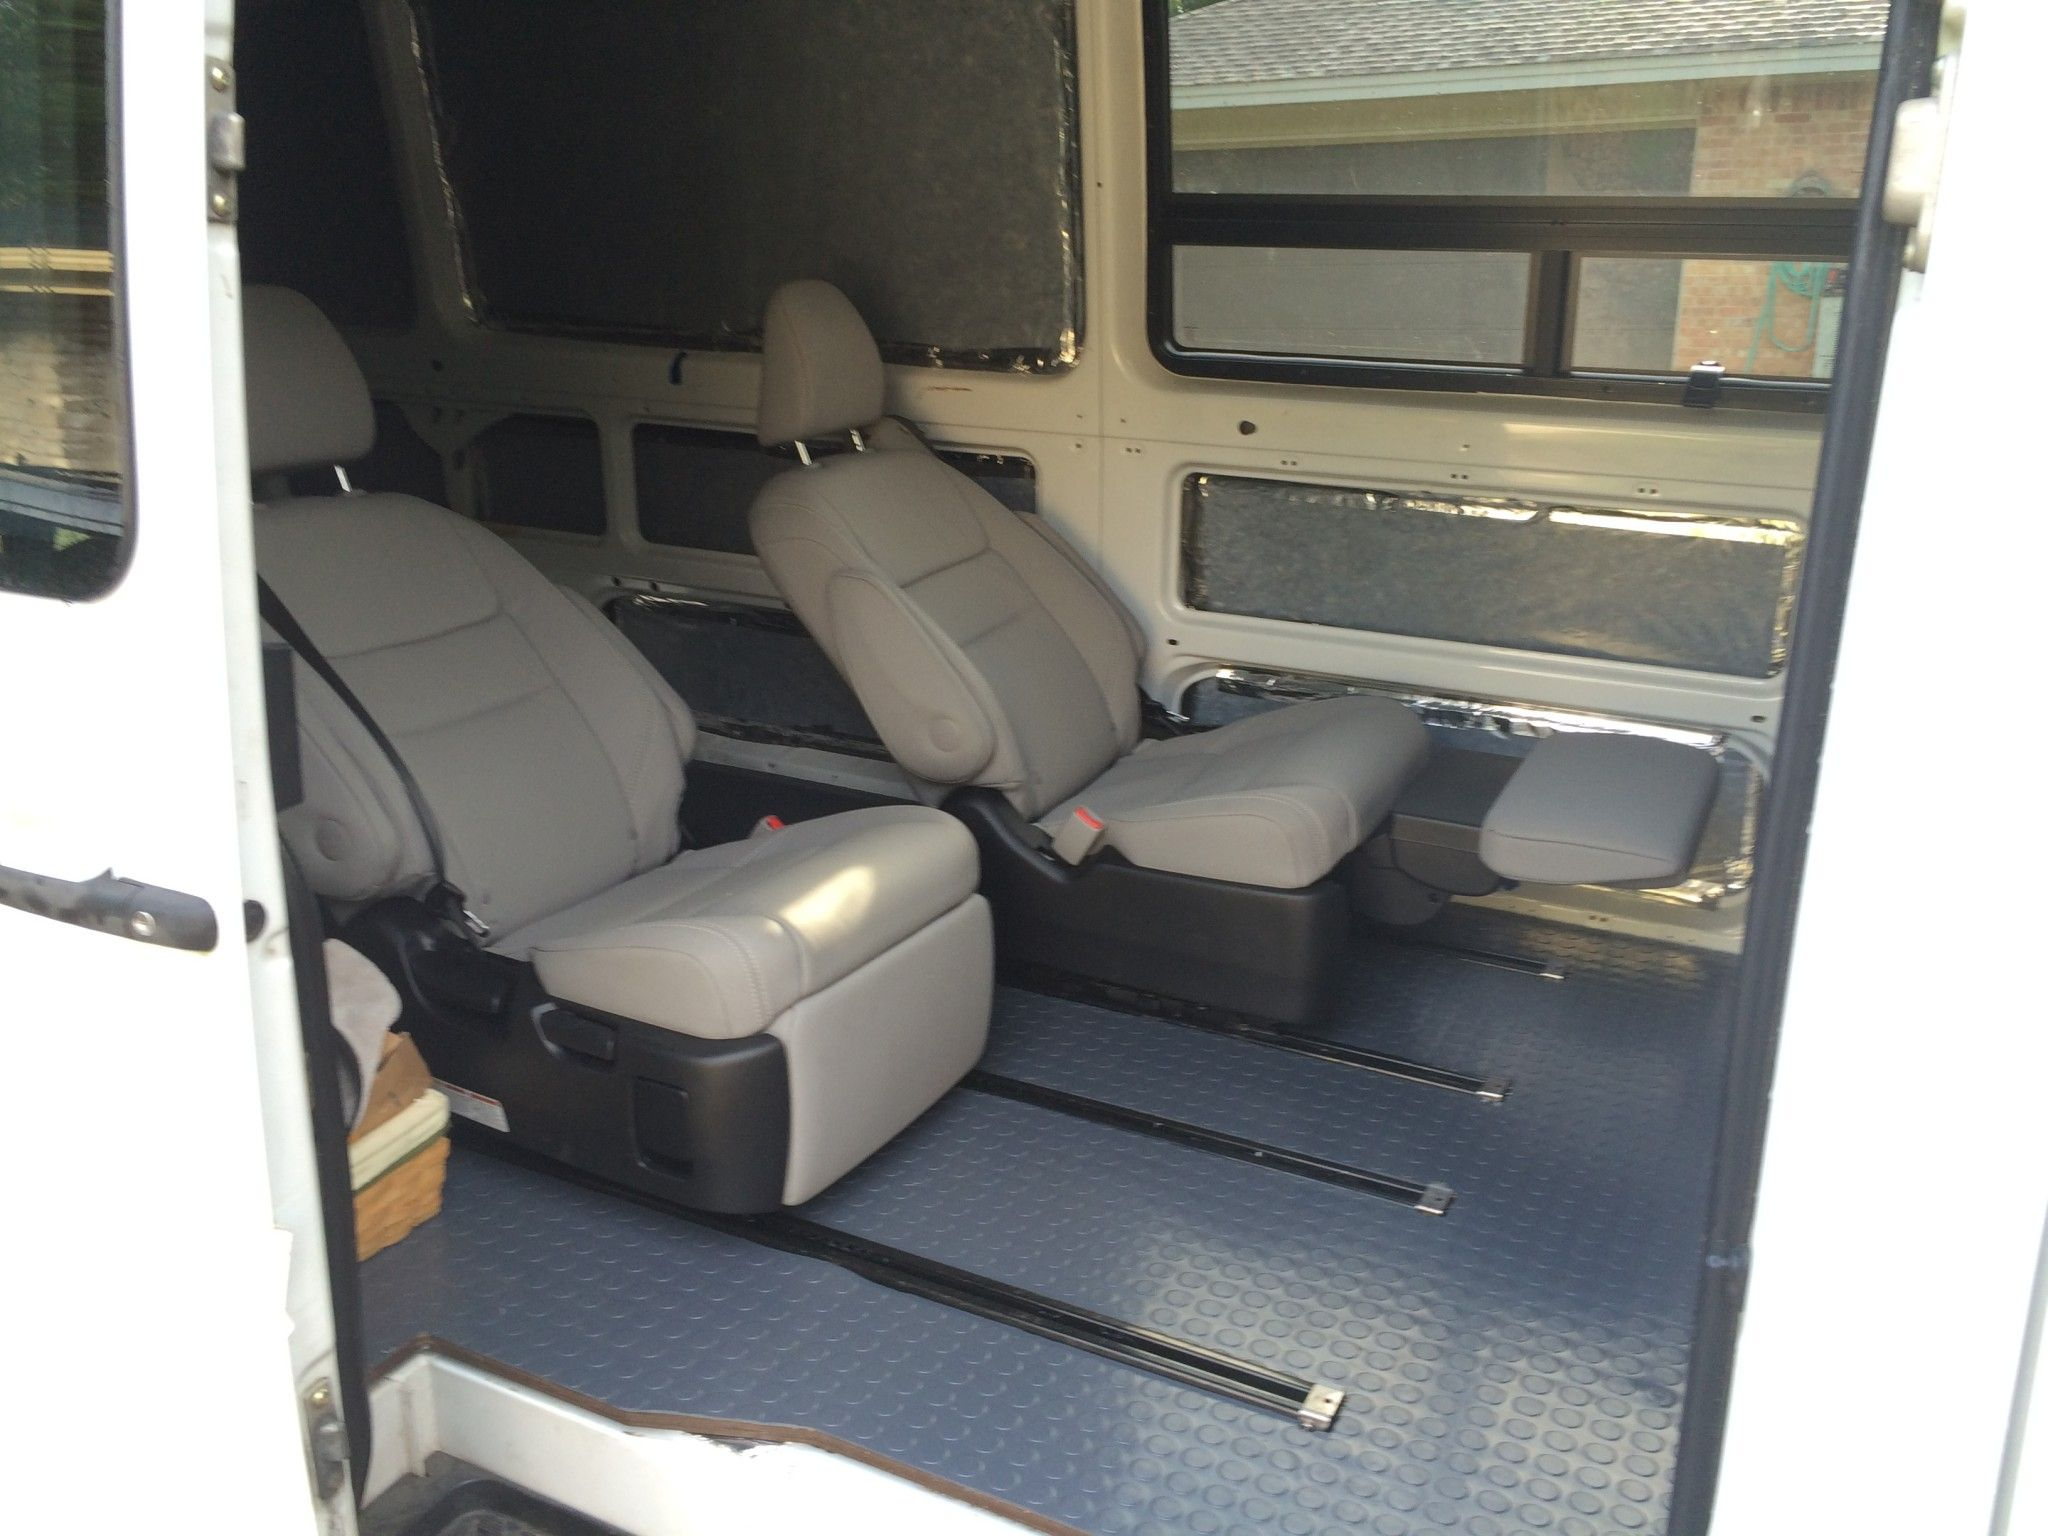 van sofa bed seat good housekeeping uk sofas toyota sienna reclining chairs in my sprinter